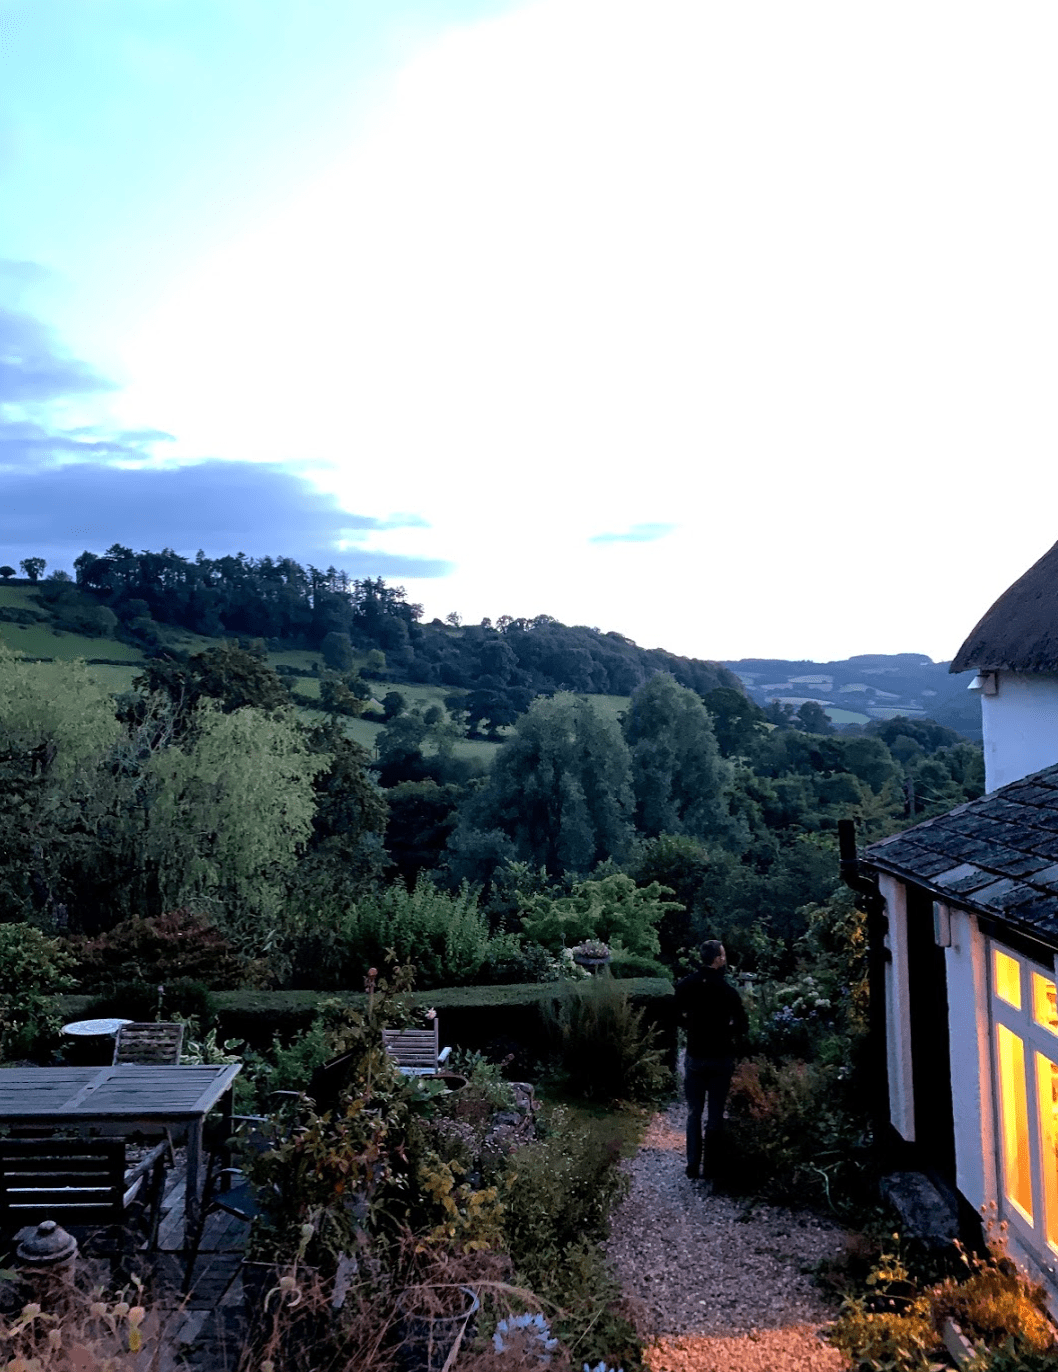 Views of the Devon countryside